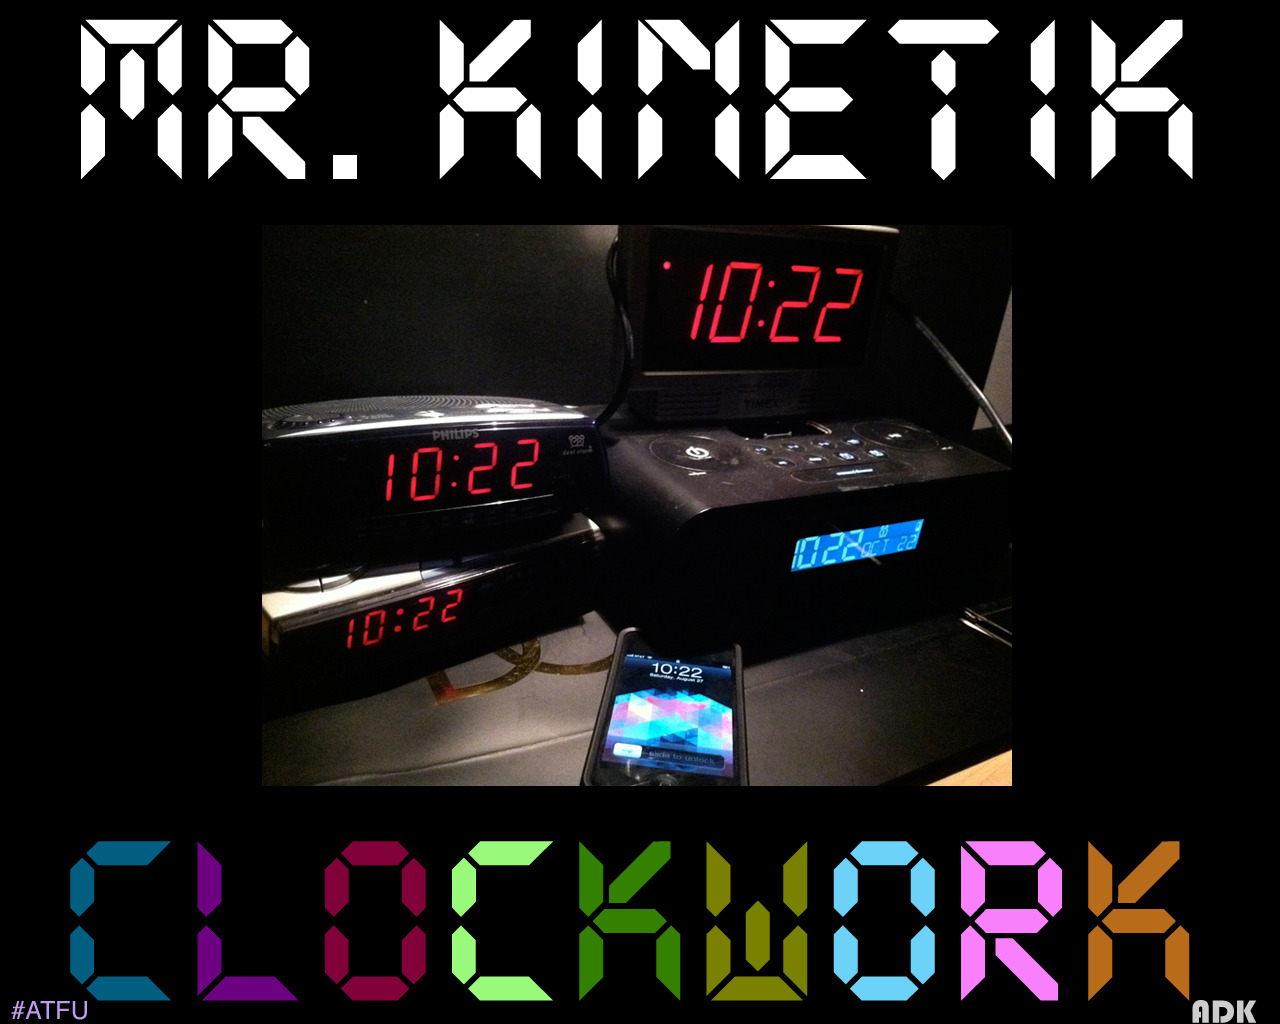 tornadoalleymusic:  mrkinetik:  I present to you, Clockwork. This one is free for y'all, as a token of my appreciation for your support of my musical endeavors. This is a musical journey with a focus on…..well, just listen to it and let me know what you think. Click the picture or the title and enjoy the ride. Peace to my brotha Romer. The Peace, Mr. Kinetik  And HERE IT IS…brand new from Mr. Kinetik.  Another Timely Funky Undertaking…and it's free.  Click the pic to download 'CLOCKWORK' #ATFU  POW! New @MrKinetik. This album is amazing, a journey, a voyage …and you can have it for free.  Click the pic to download. #ATFU